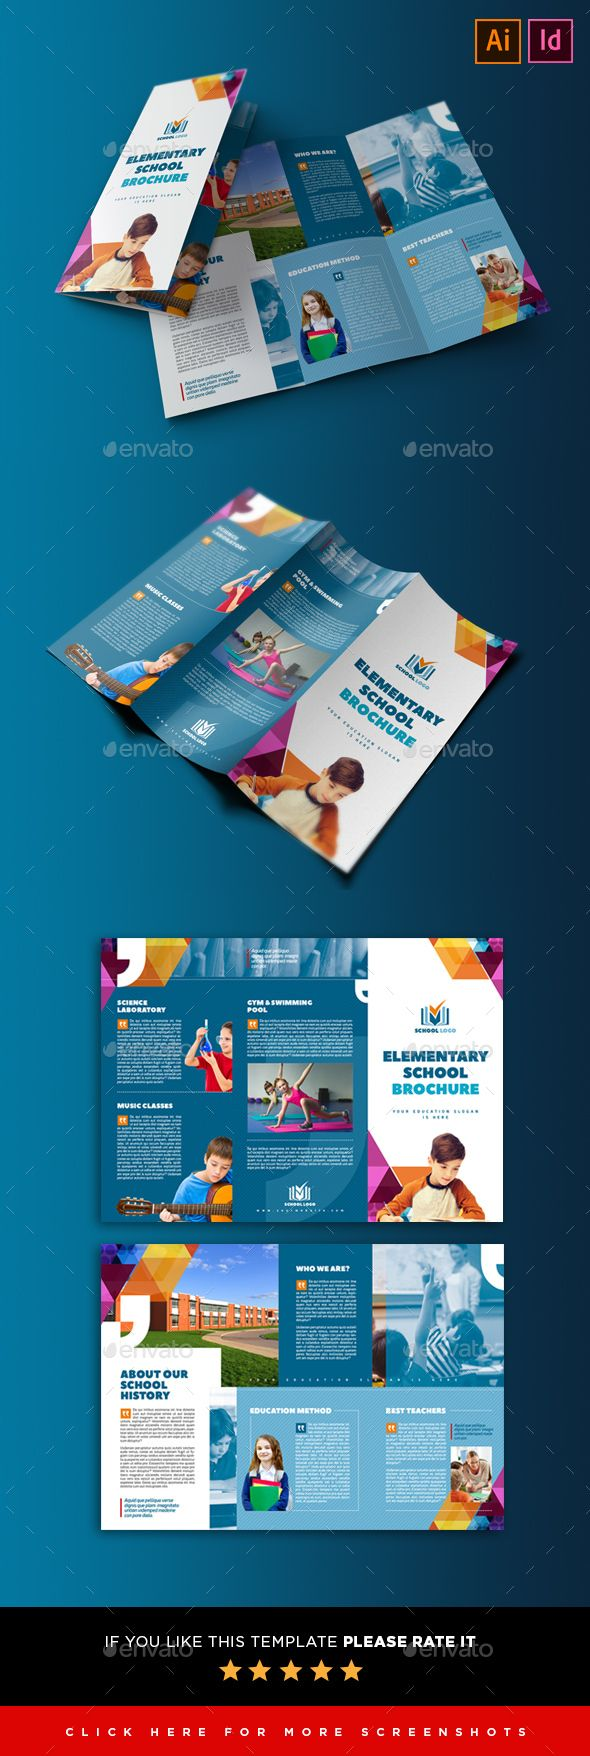 elementary school 3 fold flyer pinterest ai illustrator flyer template and primary school education